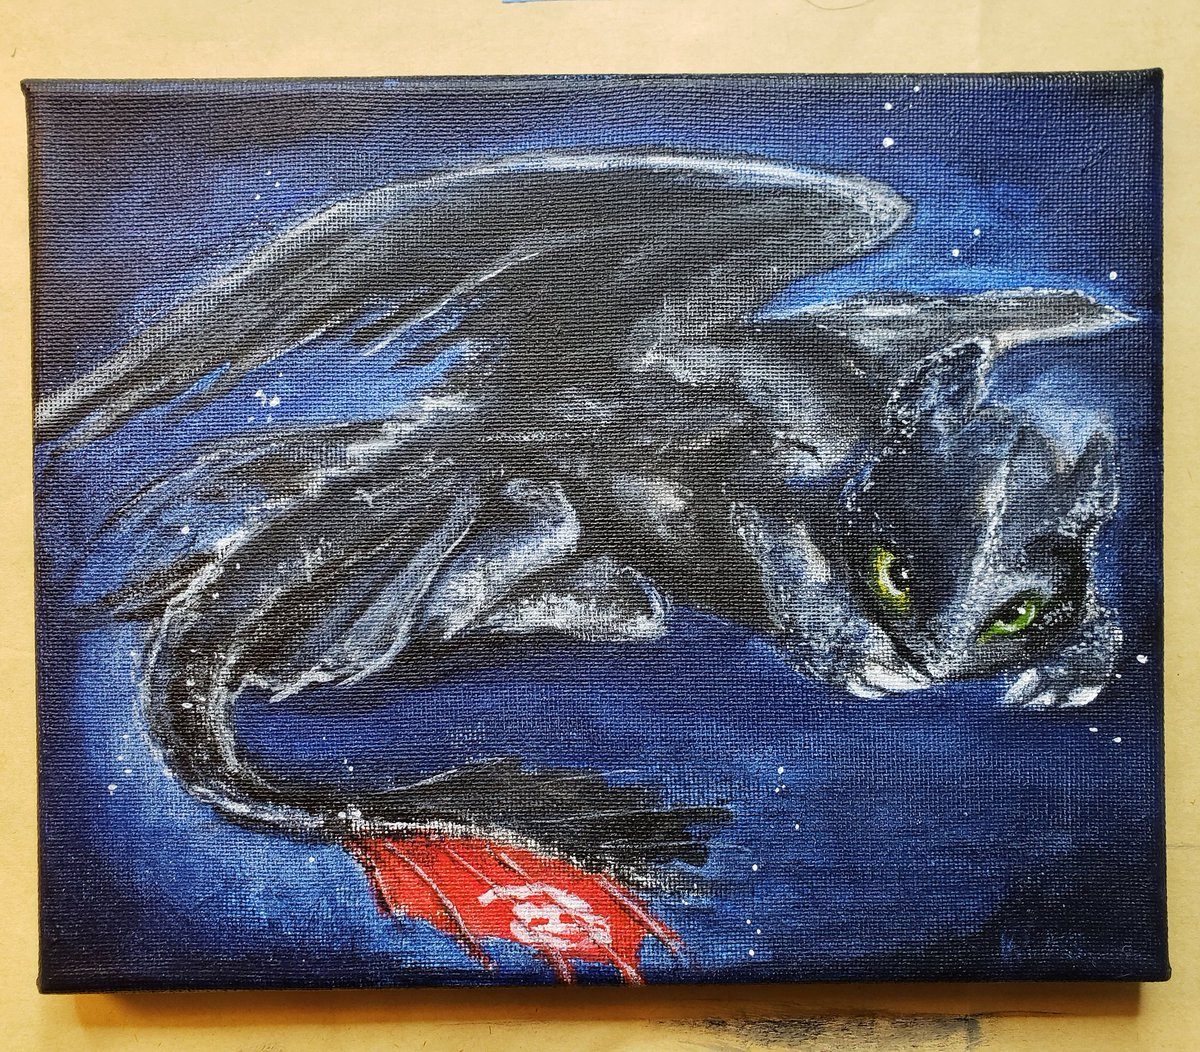 Finished toothless tonight on stream!! This piece will be open for bidding later this week <3  #HTTYD #HTTYD3 #Dragon #dragonart #acrylics #twitch